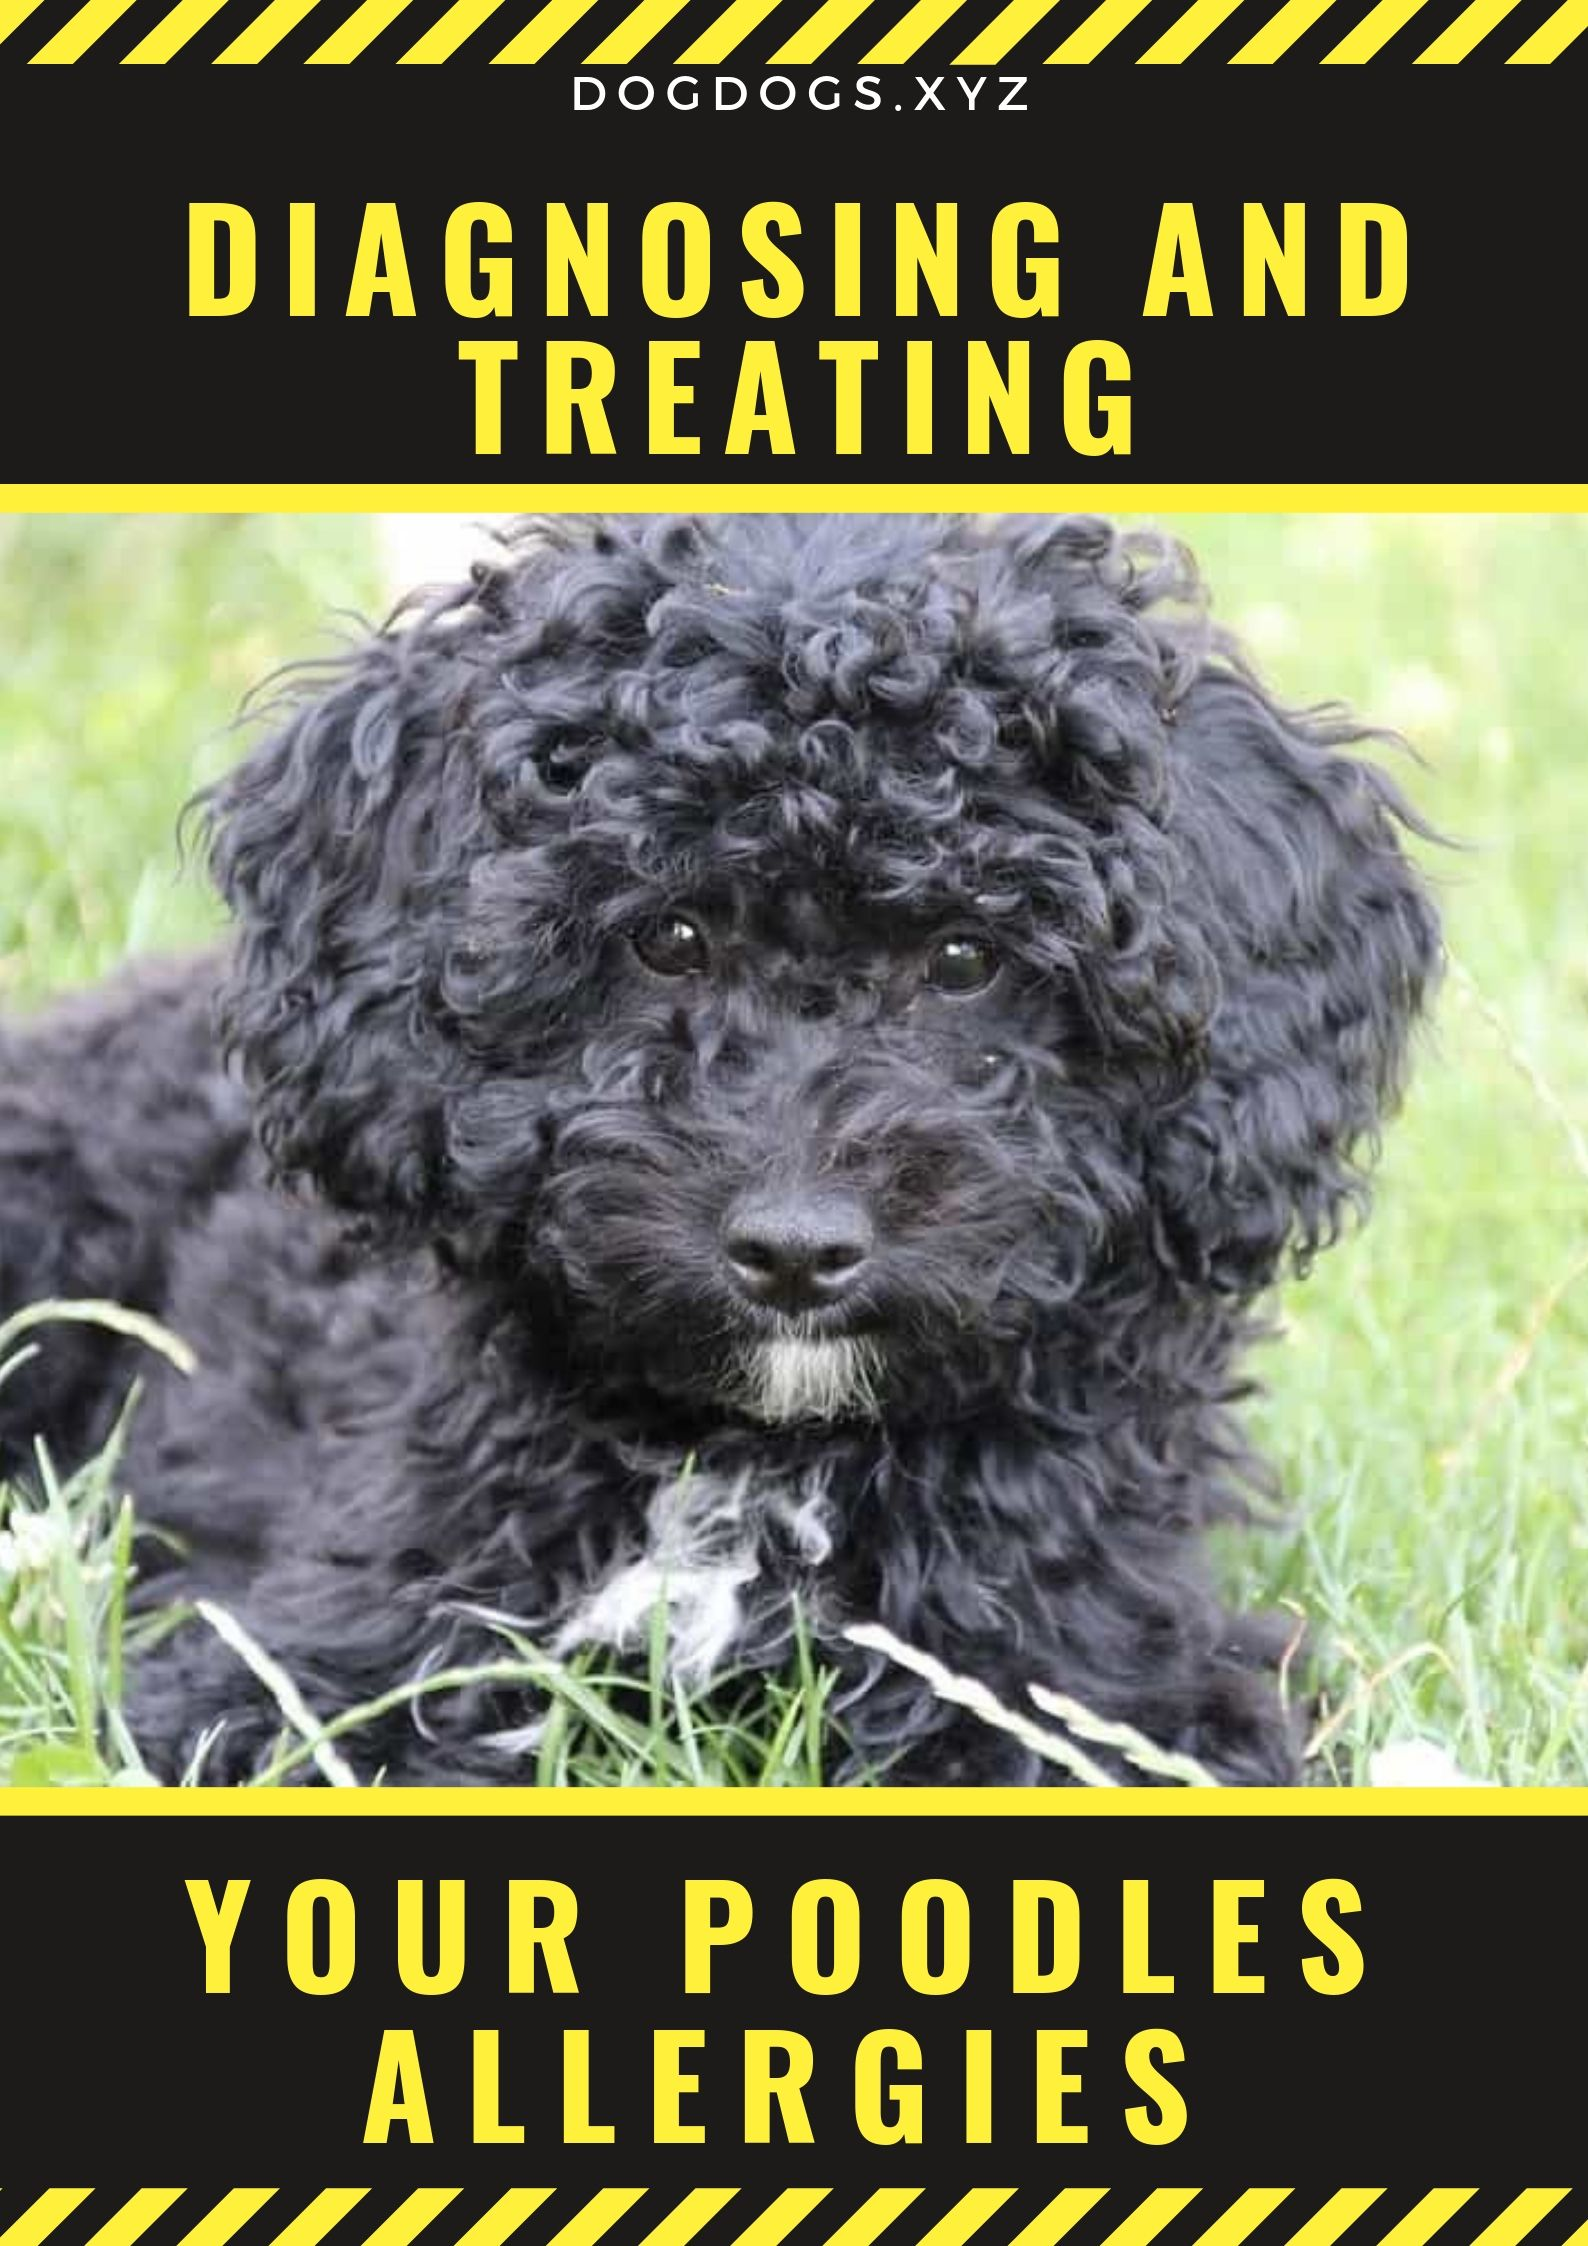 Diagnosing Treating Your Poodles Allergies Food And Drink